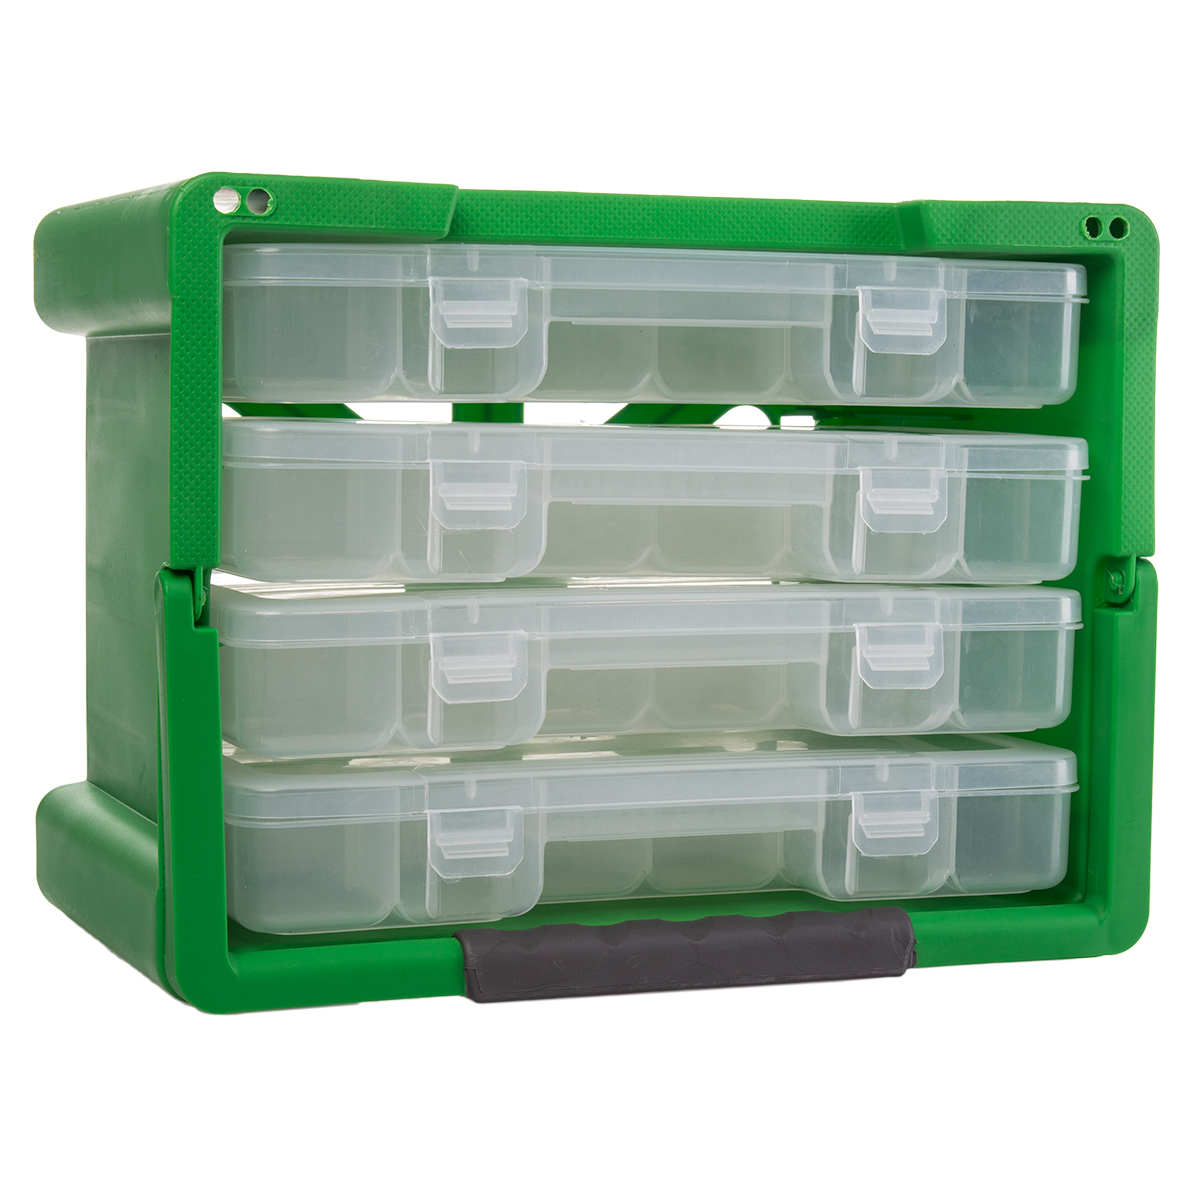 Keter 4 Drawer Organizer Case Portable Handled Plastic